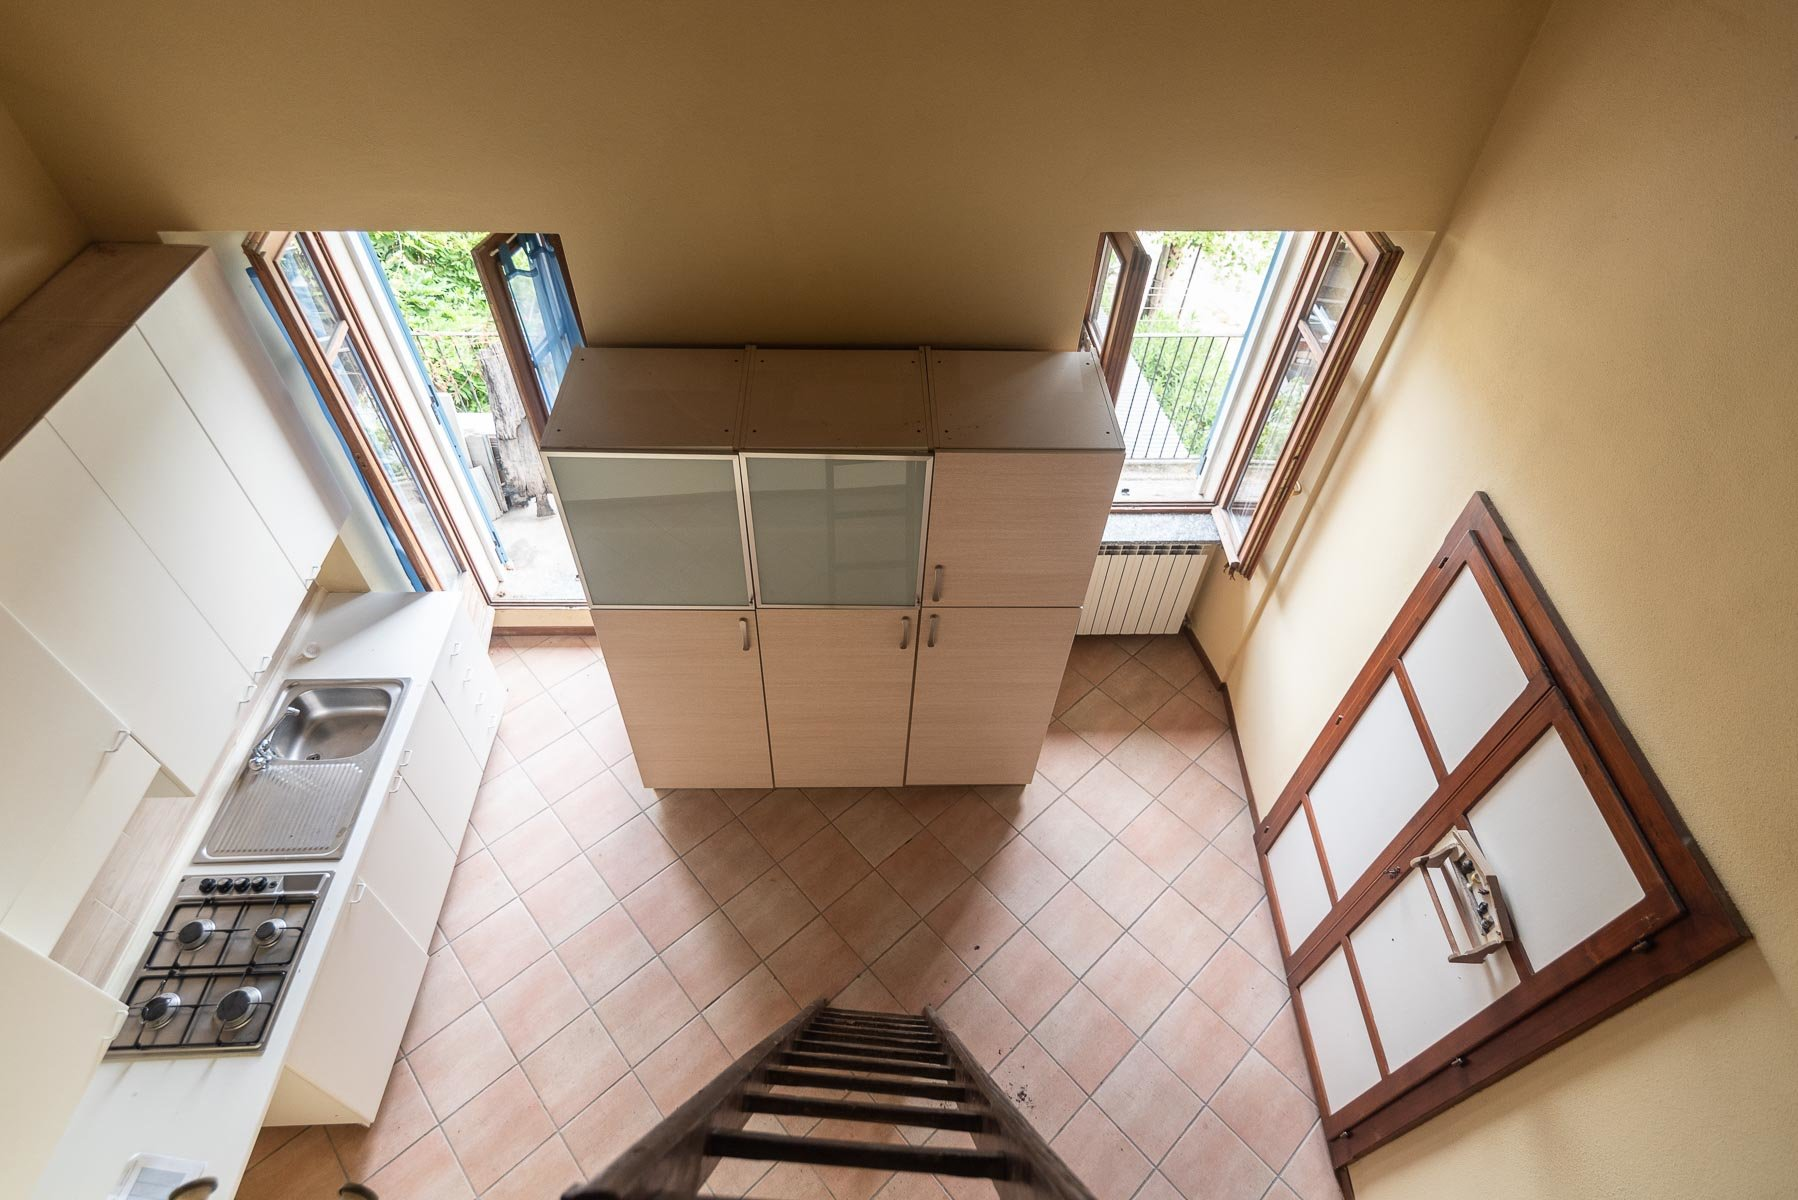 Apartment for sale in Pescatori island,Stresa- view from the loft